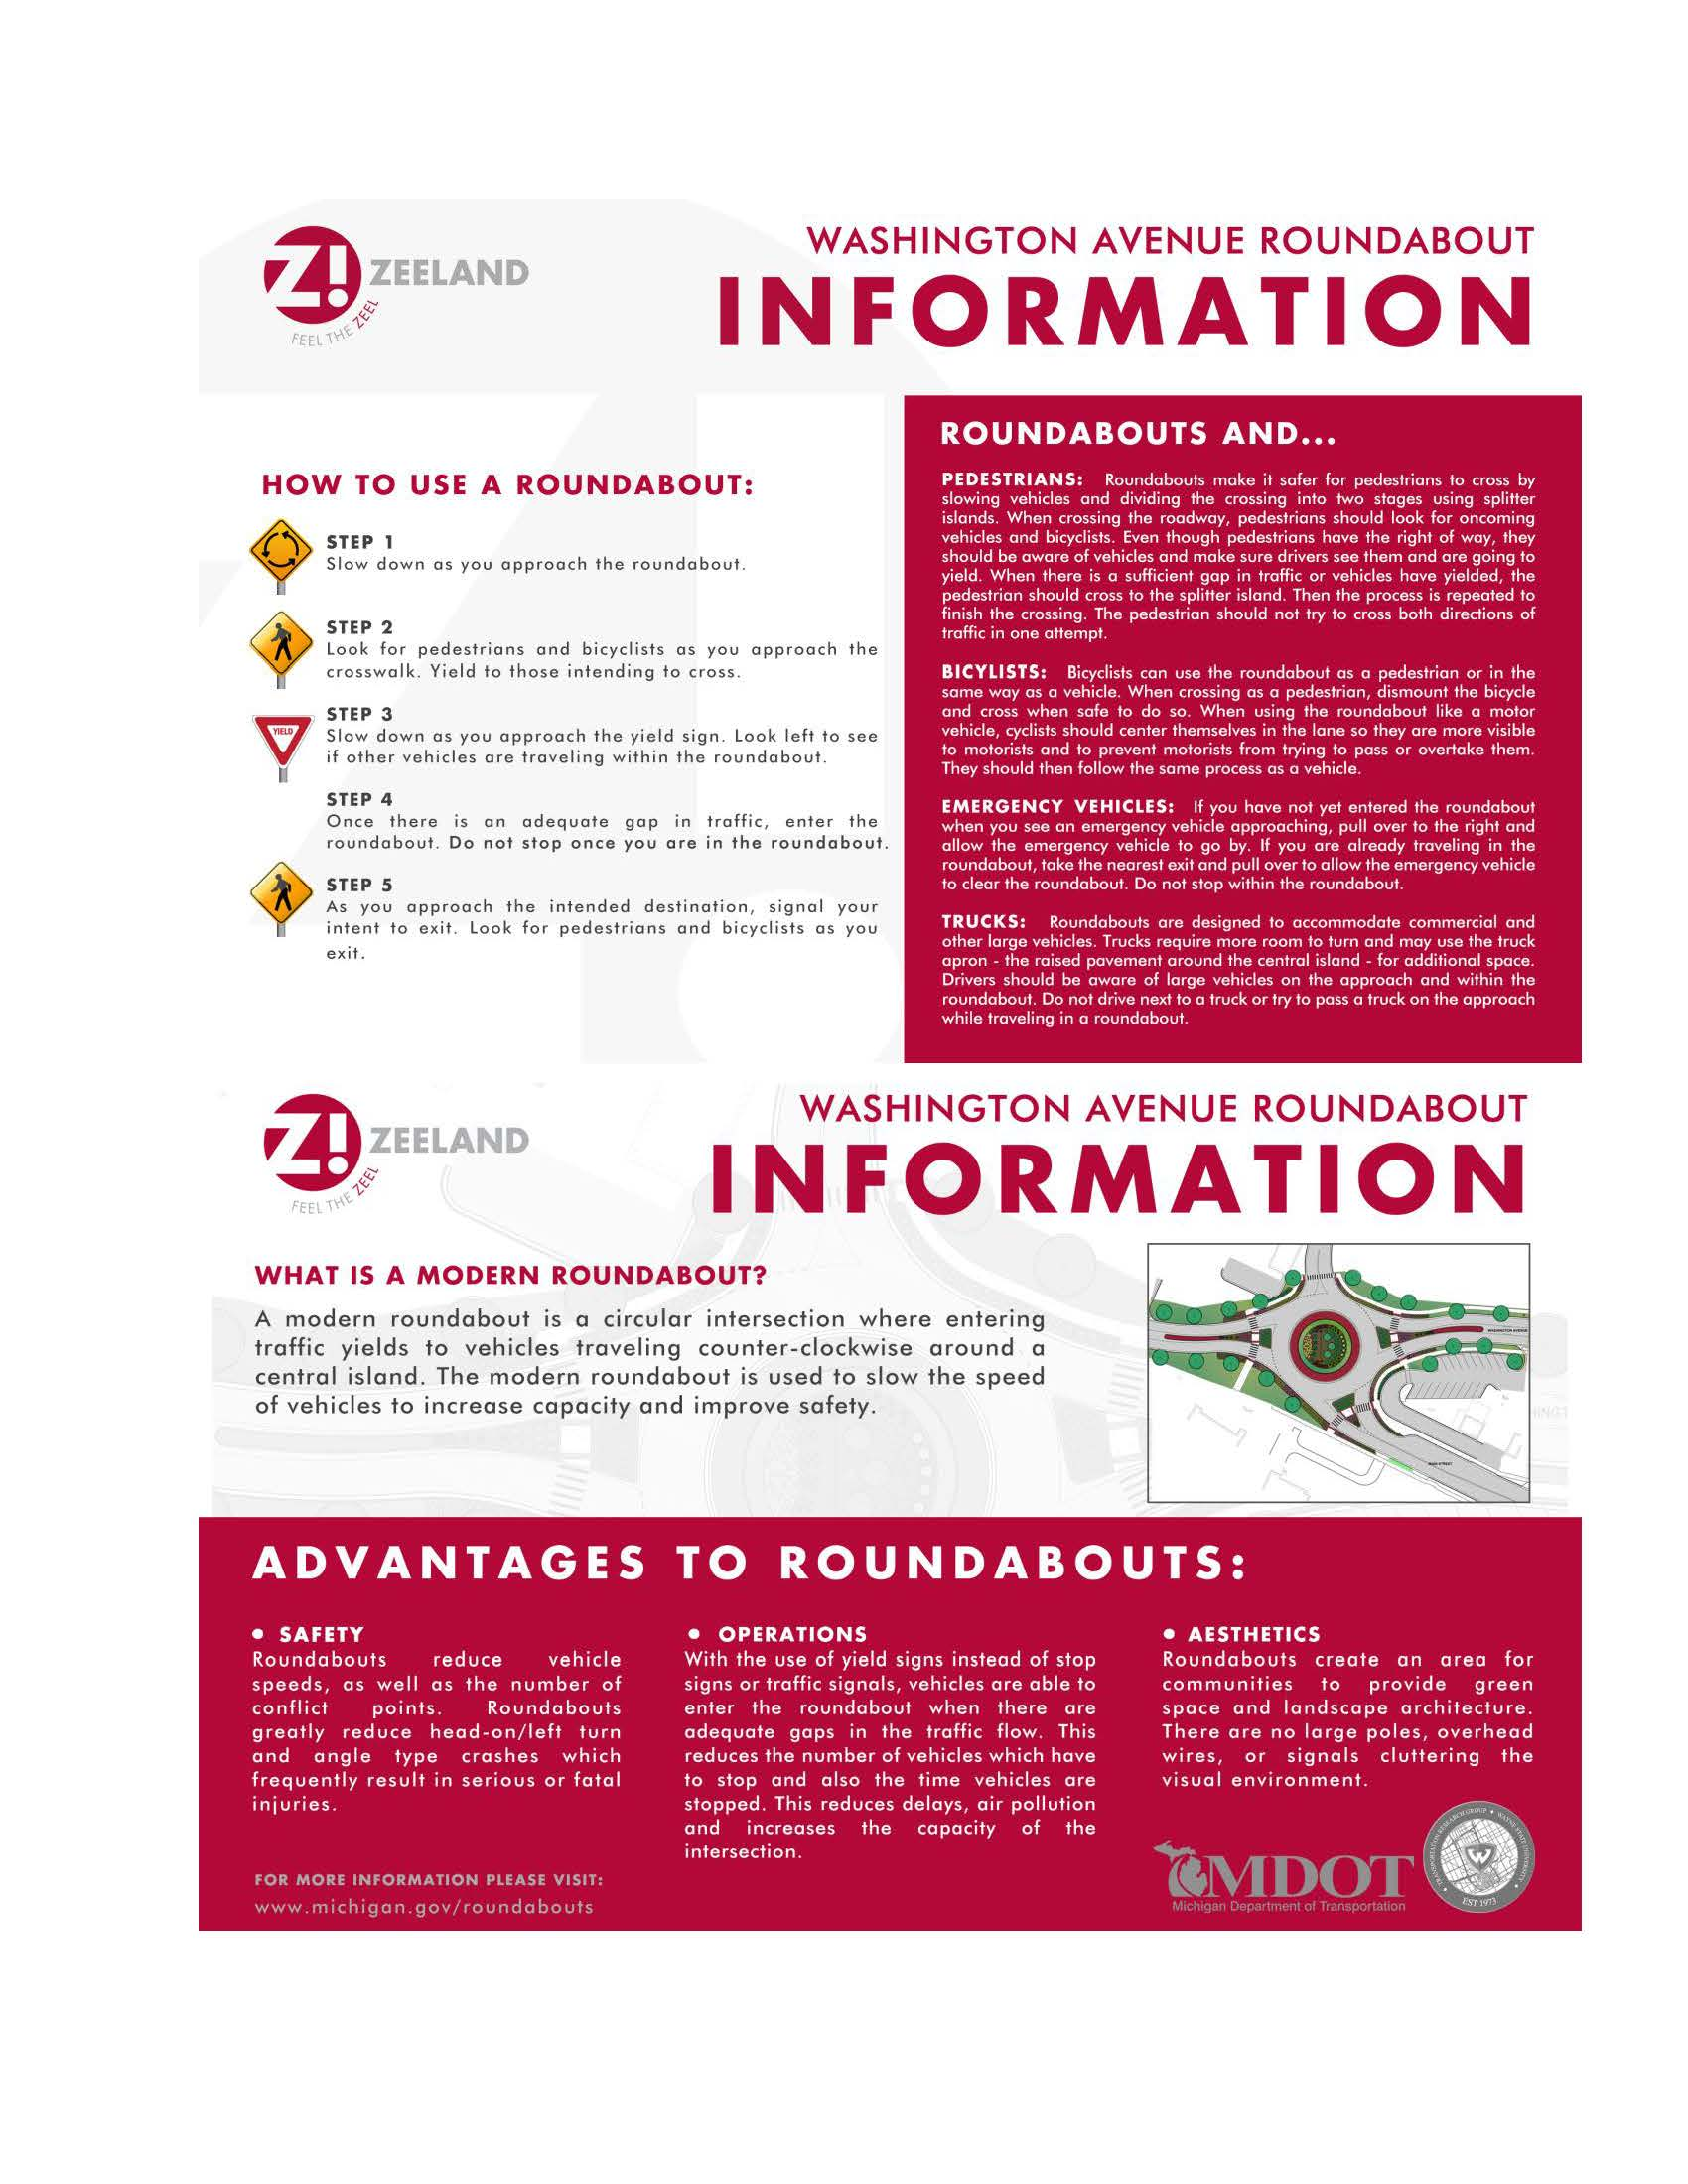 How to Use a Roundabout Information-One Page-August 2019